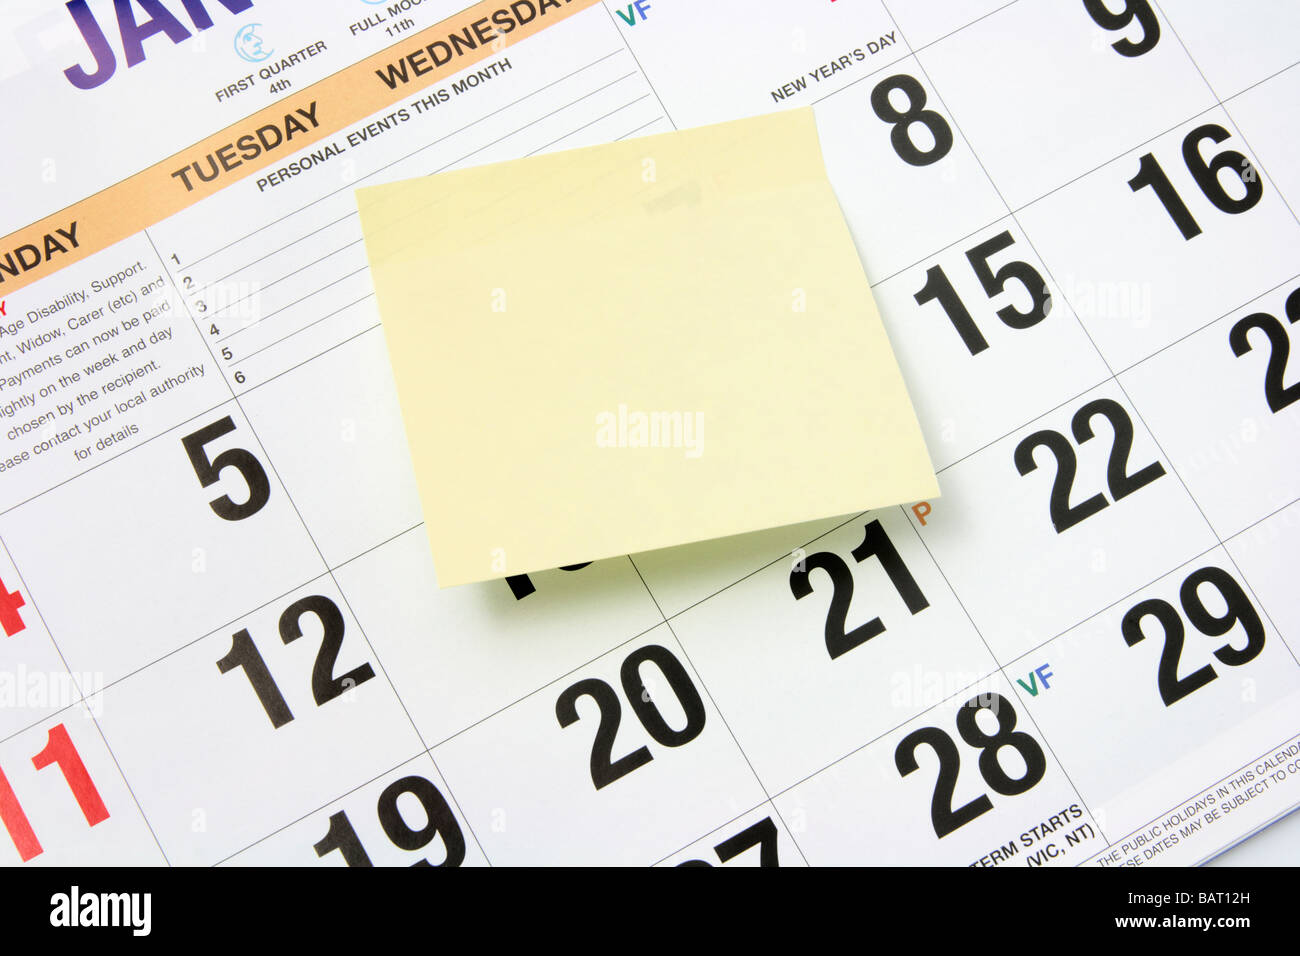 Post It Note on Calendar - Stock Image